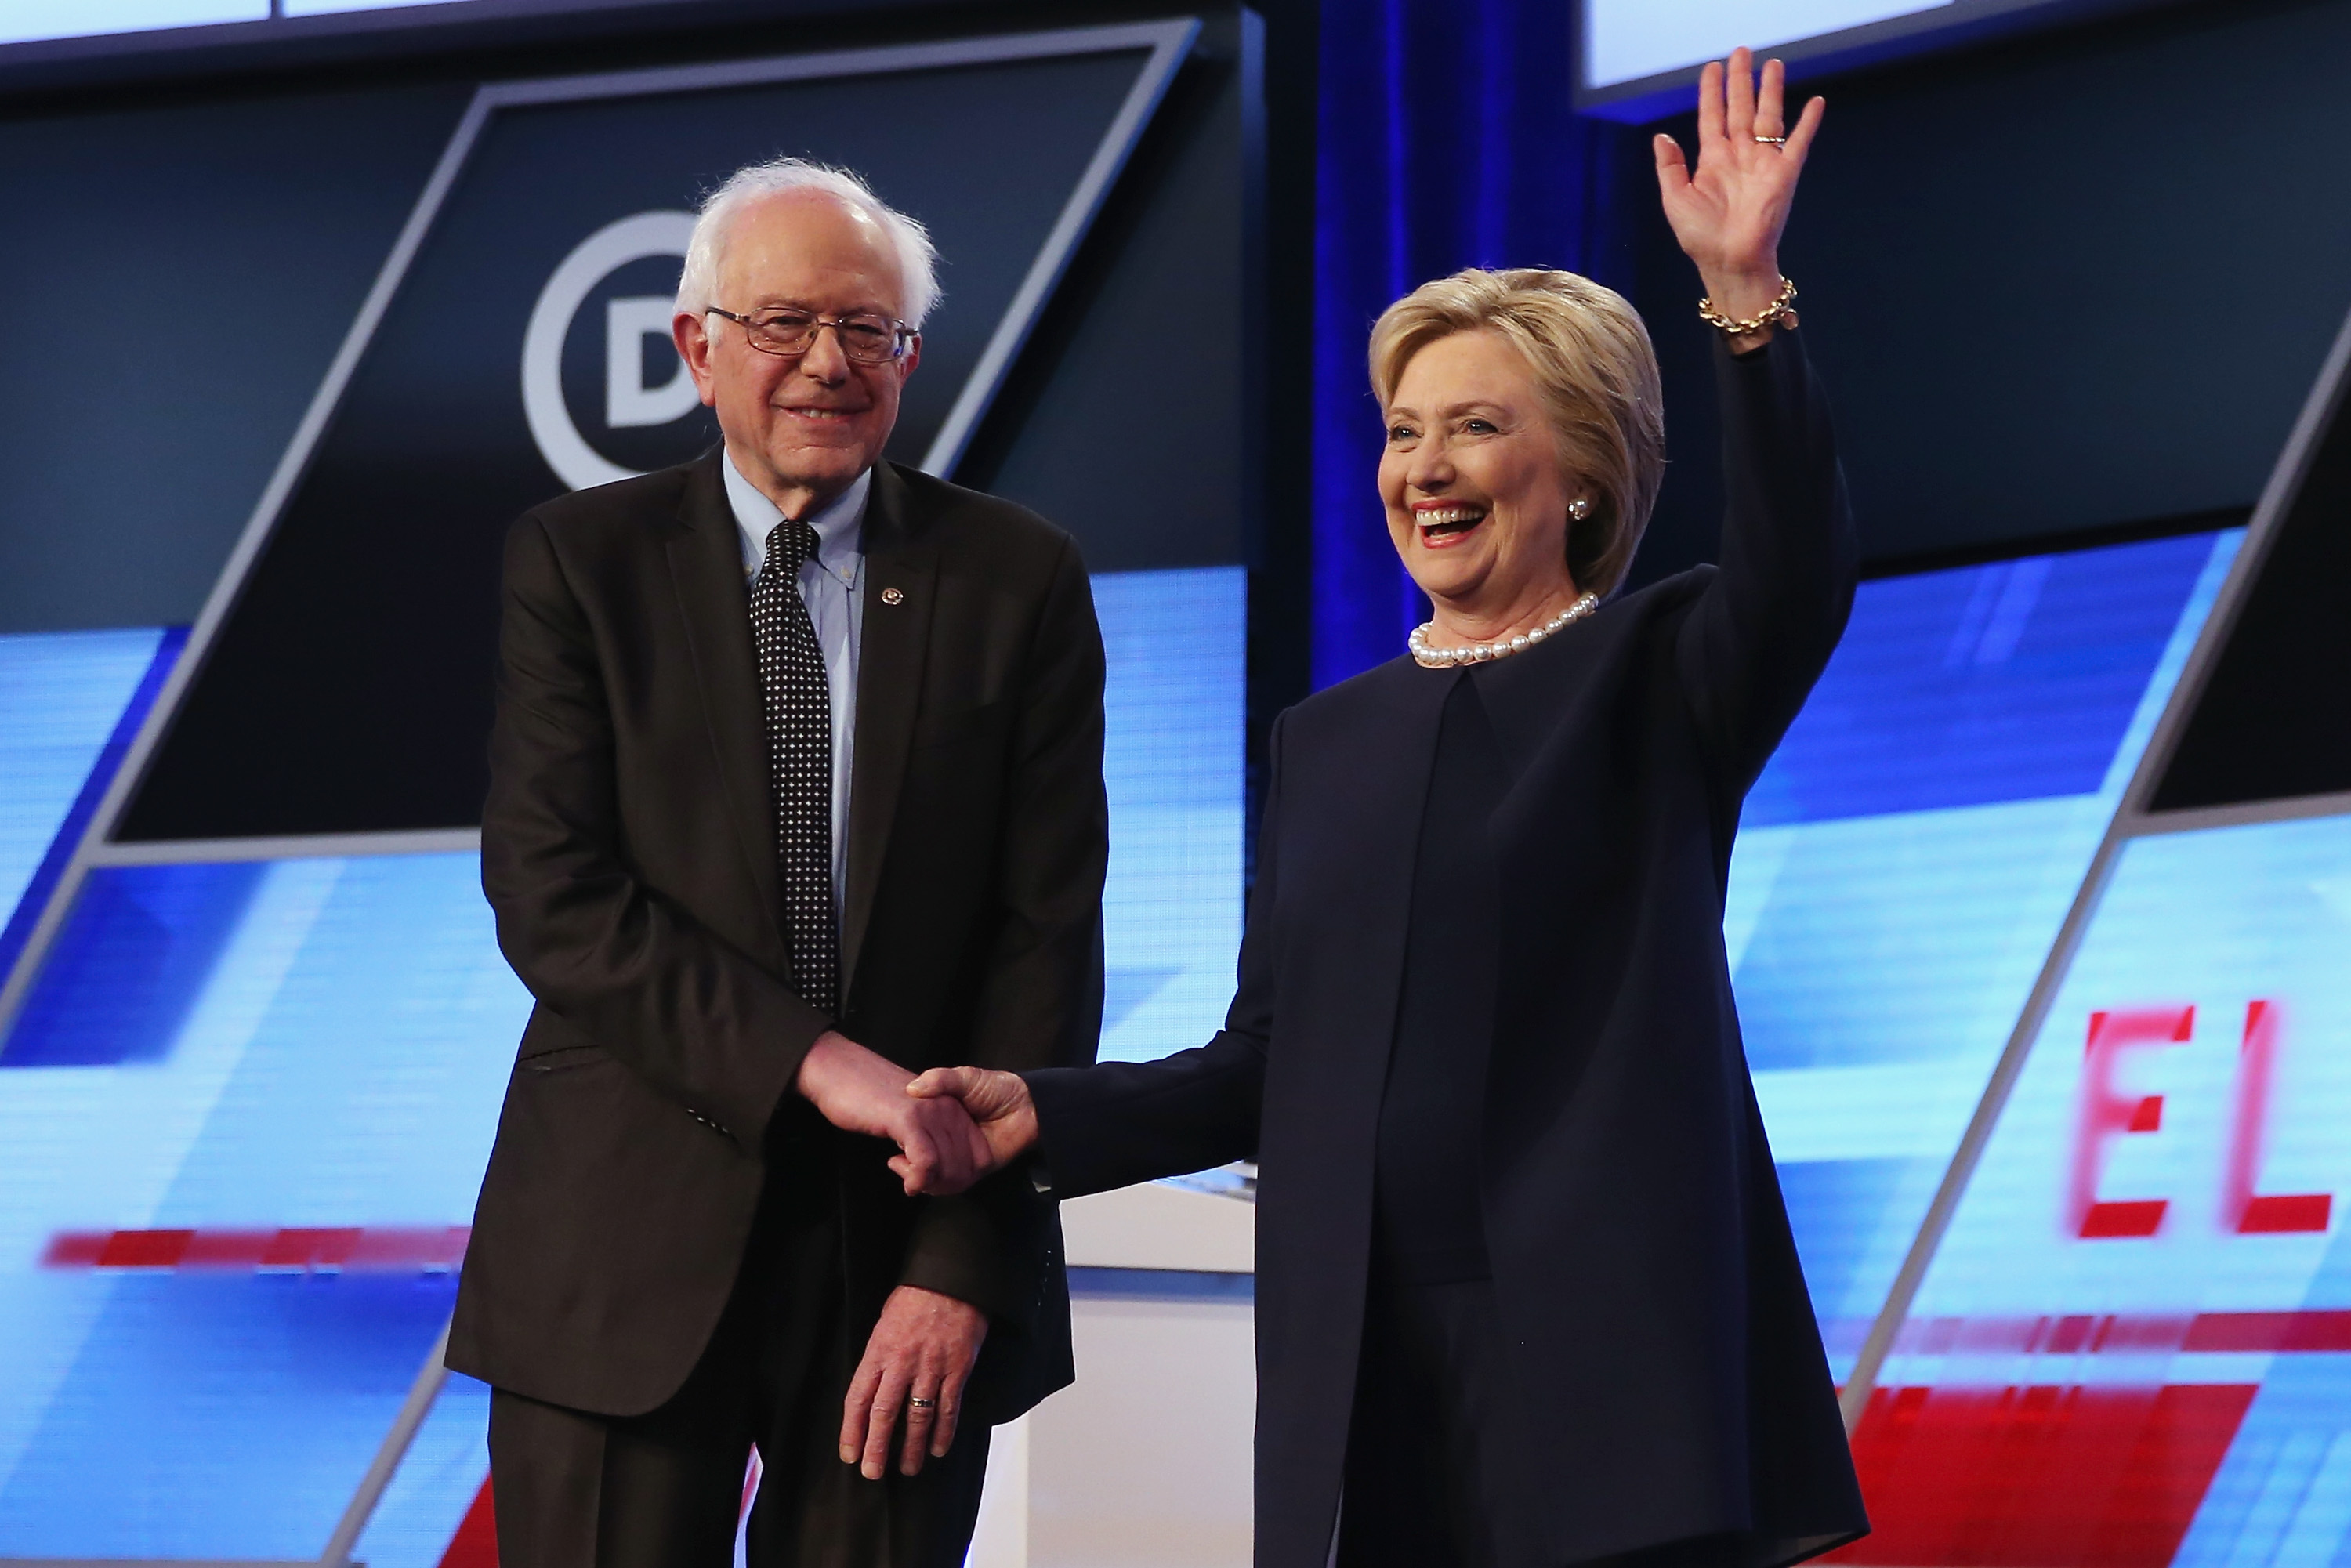 Democratic presidential candidates Senator Bernie Sanders and Hillary Clinton shake hands at a debate in March.